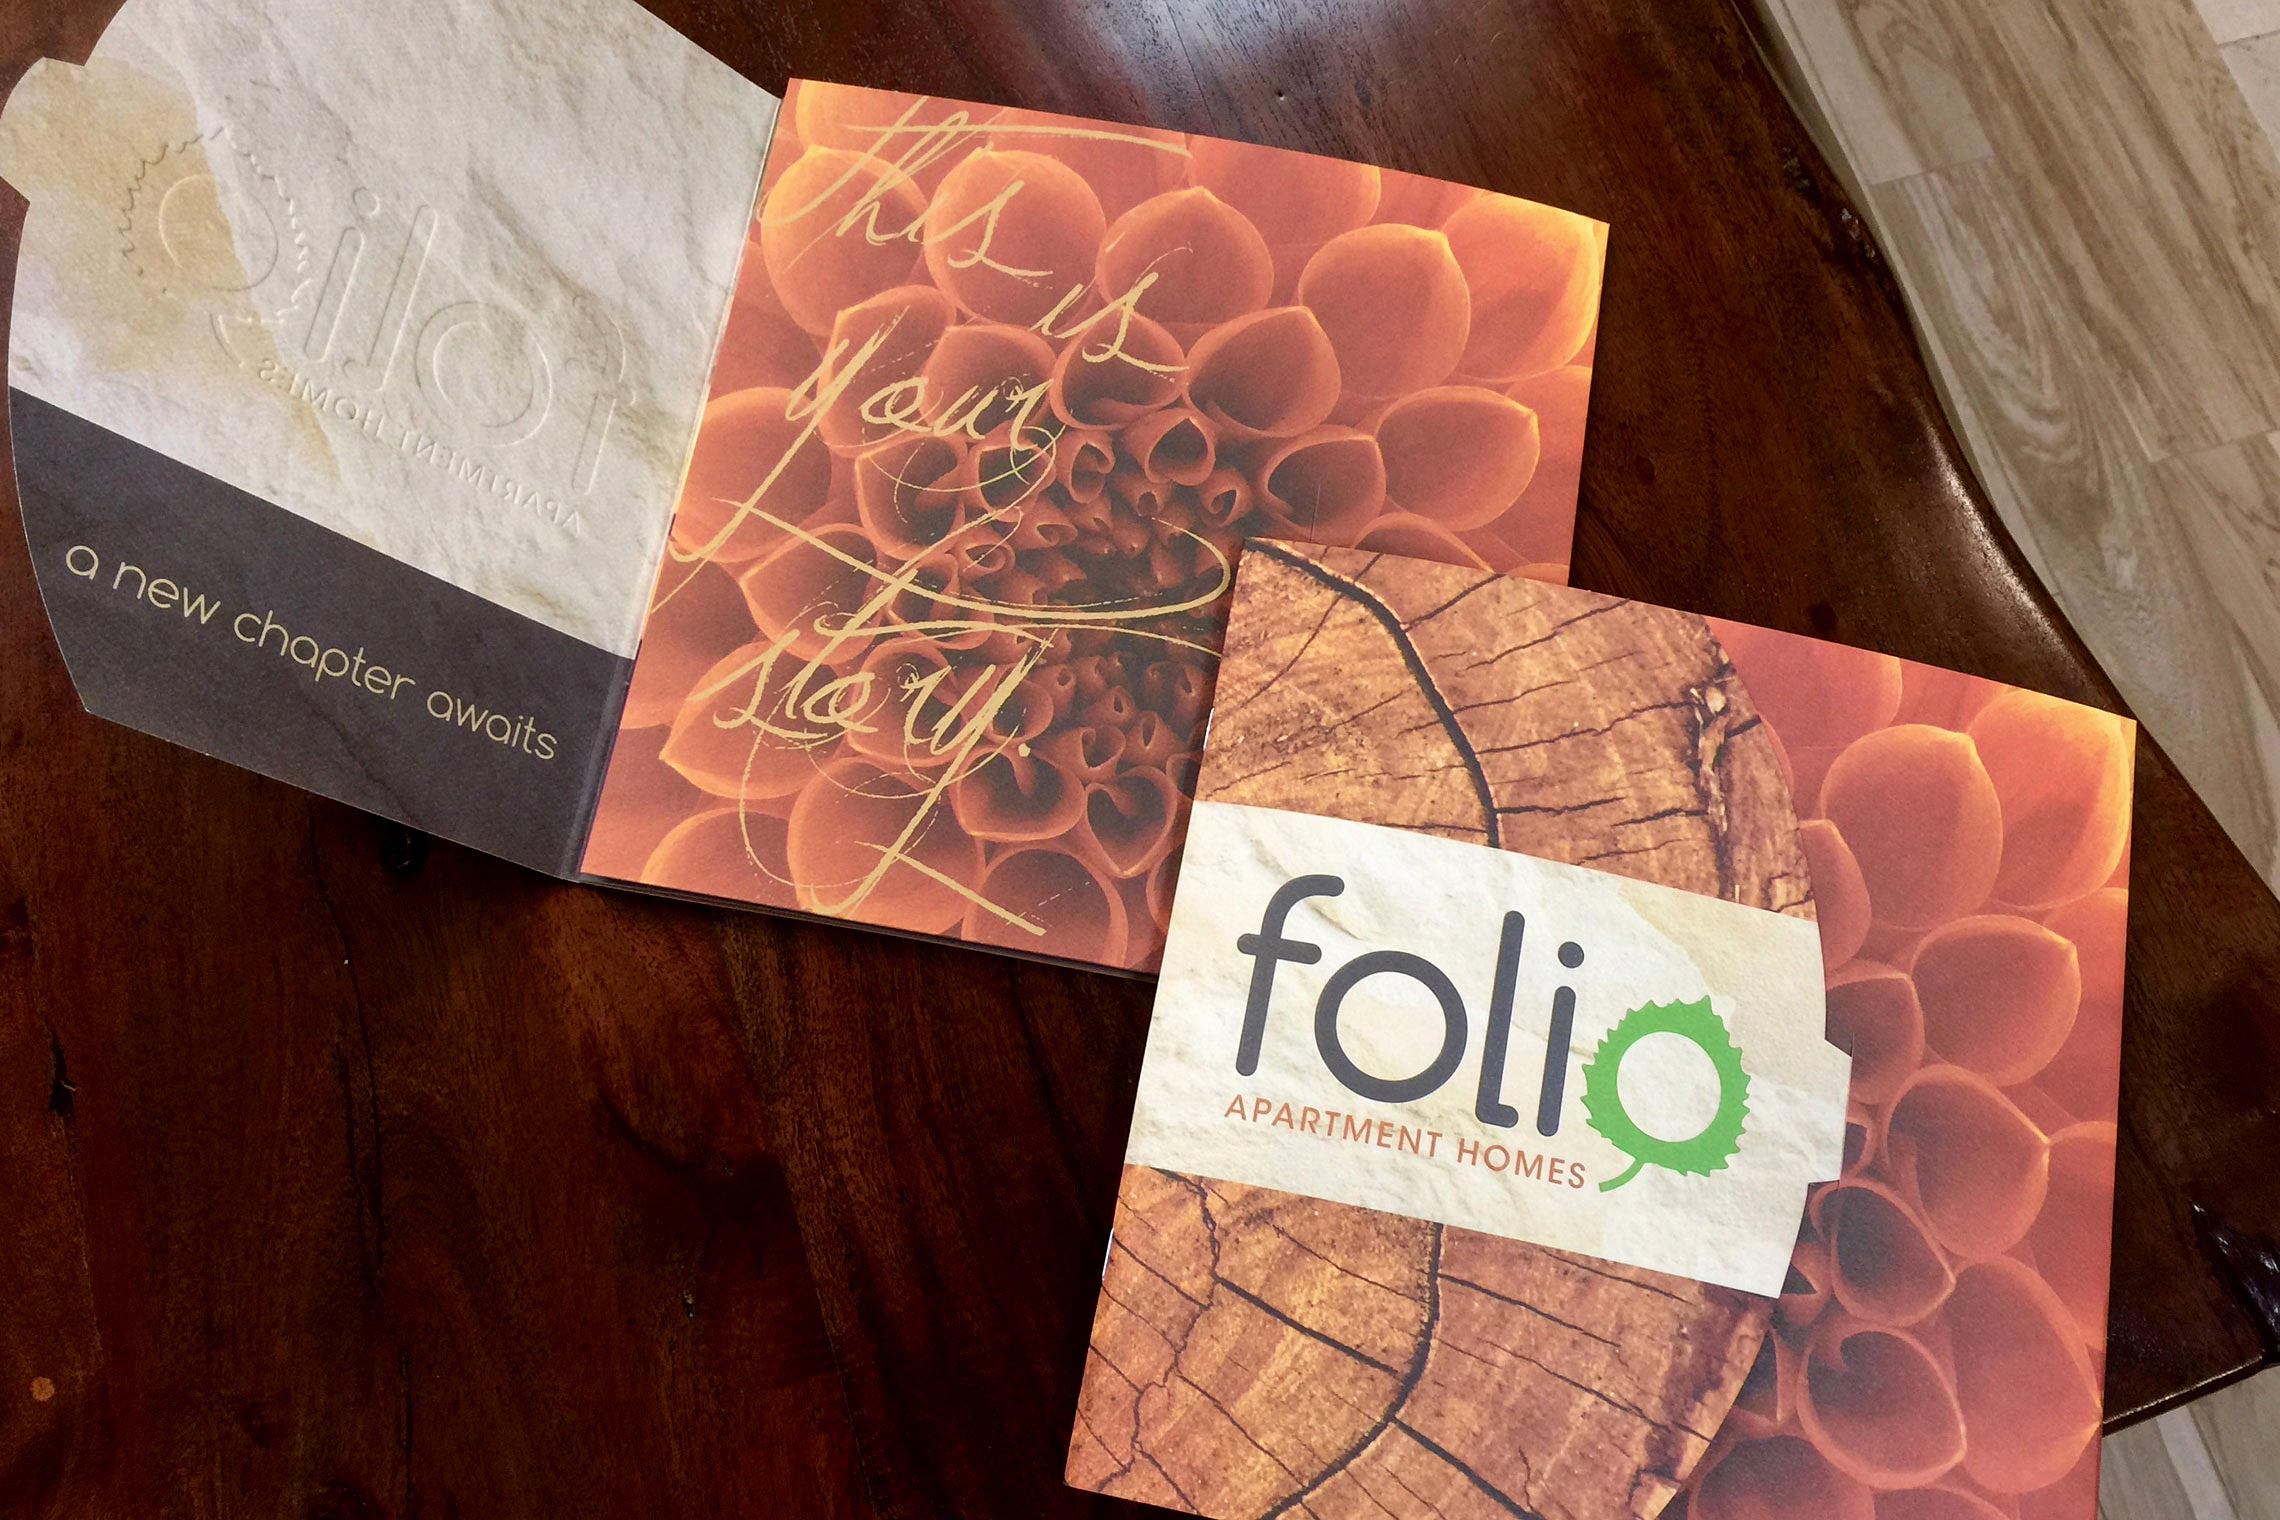 Folio Apartment Homes Custom Collateral - Brochure Cover and Inside Spread